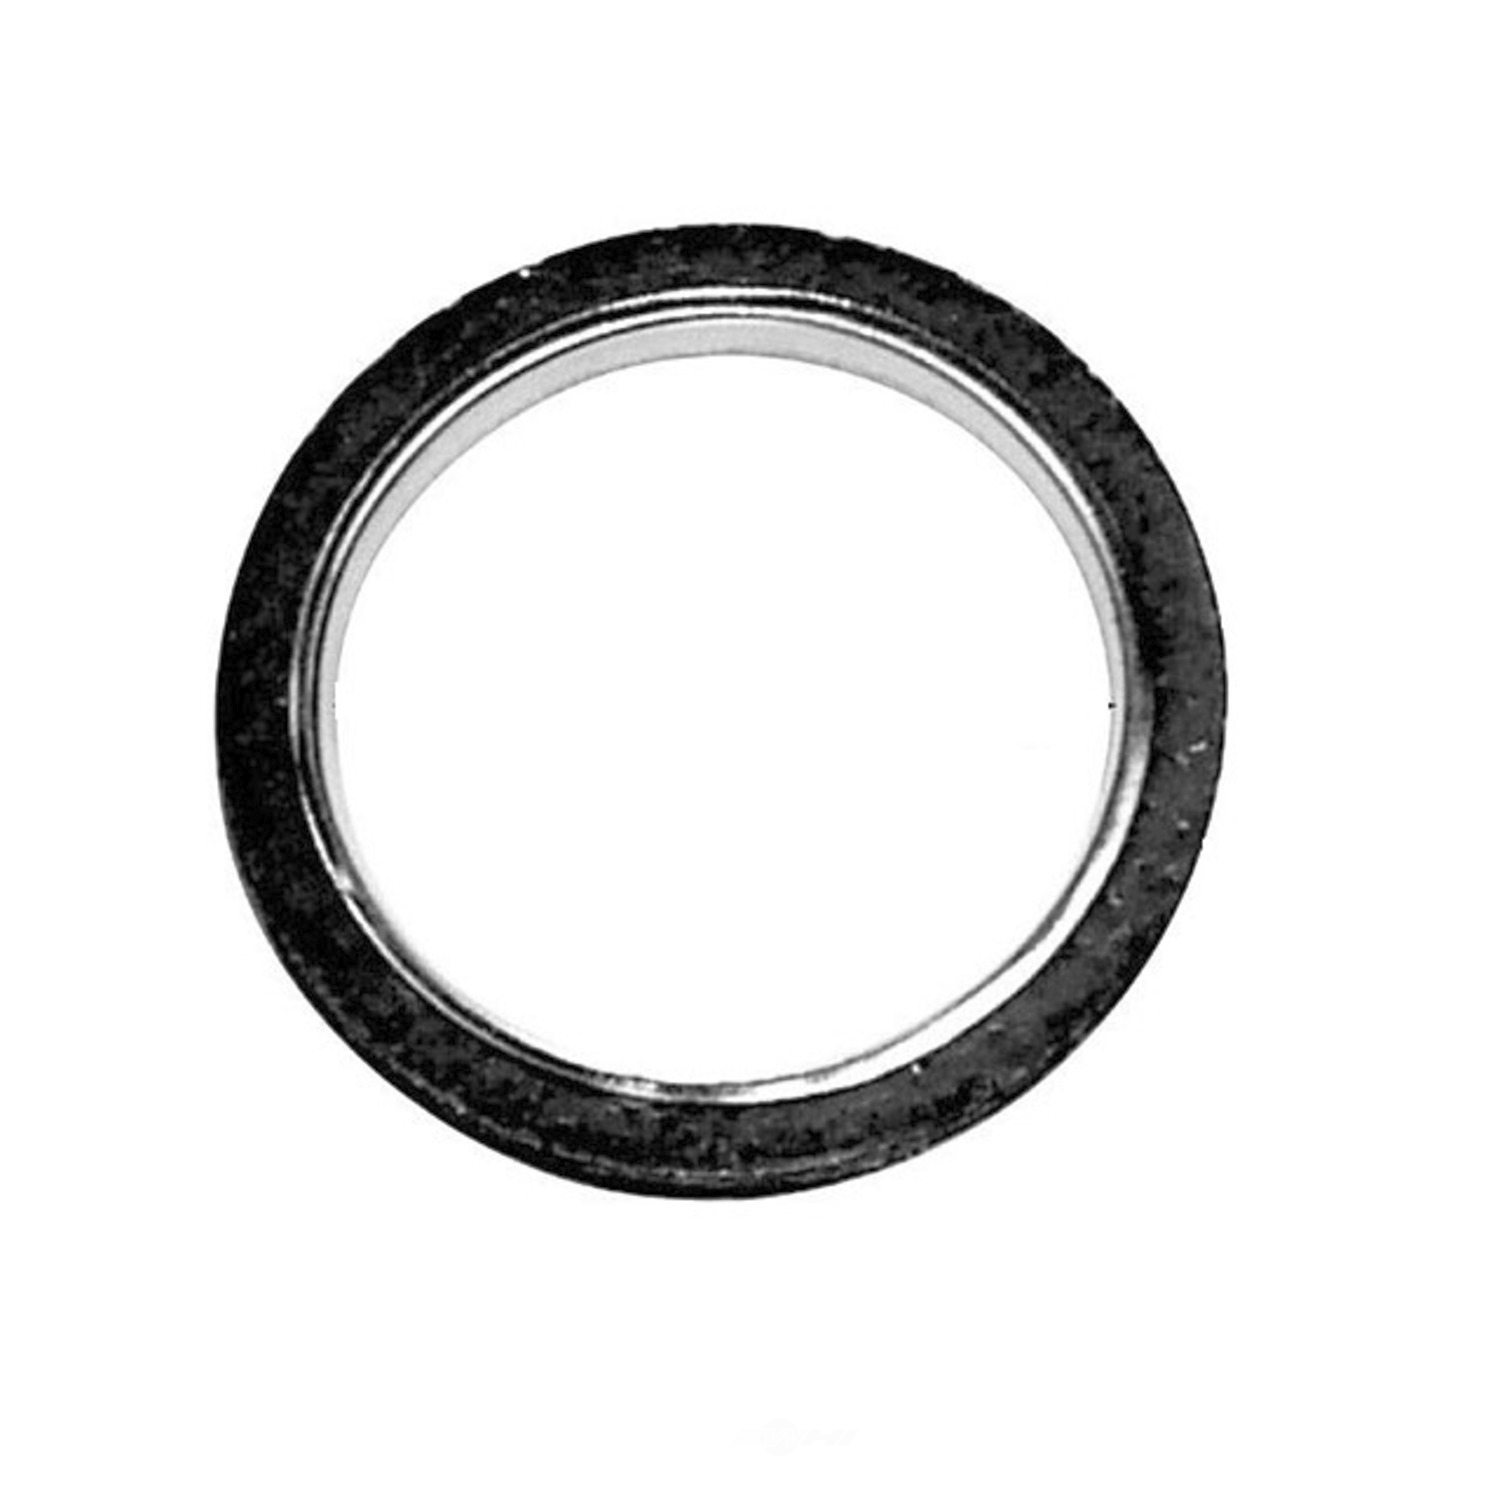 ANSA/SILVERLINE PRODUCTS - Exhaust Pipe Flange Gasket - ANE HW9024